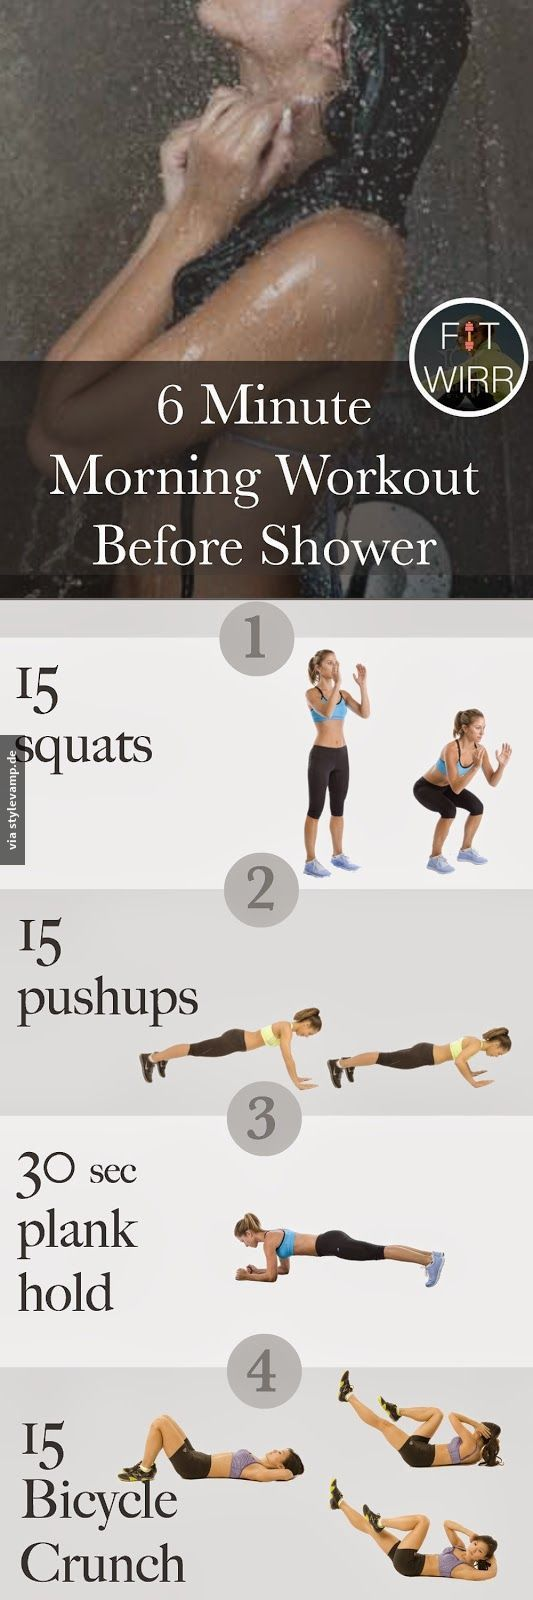 Morning Workout!